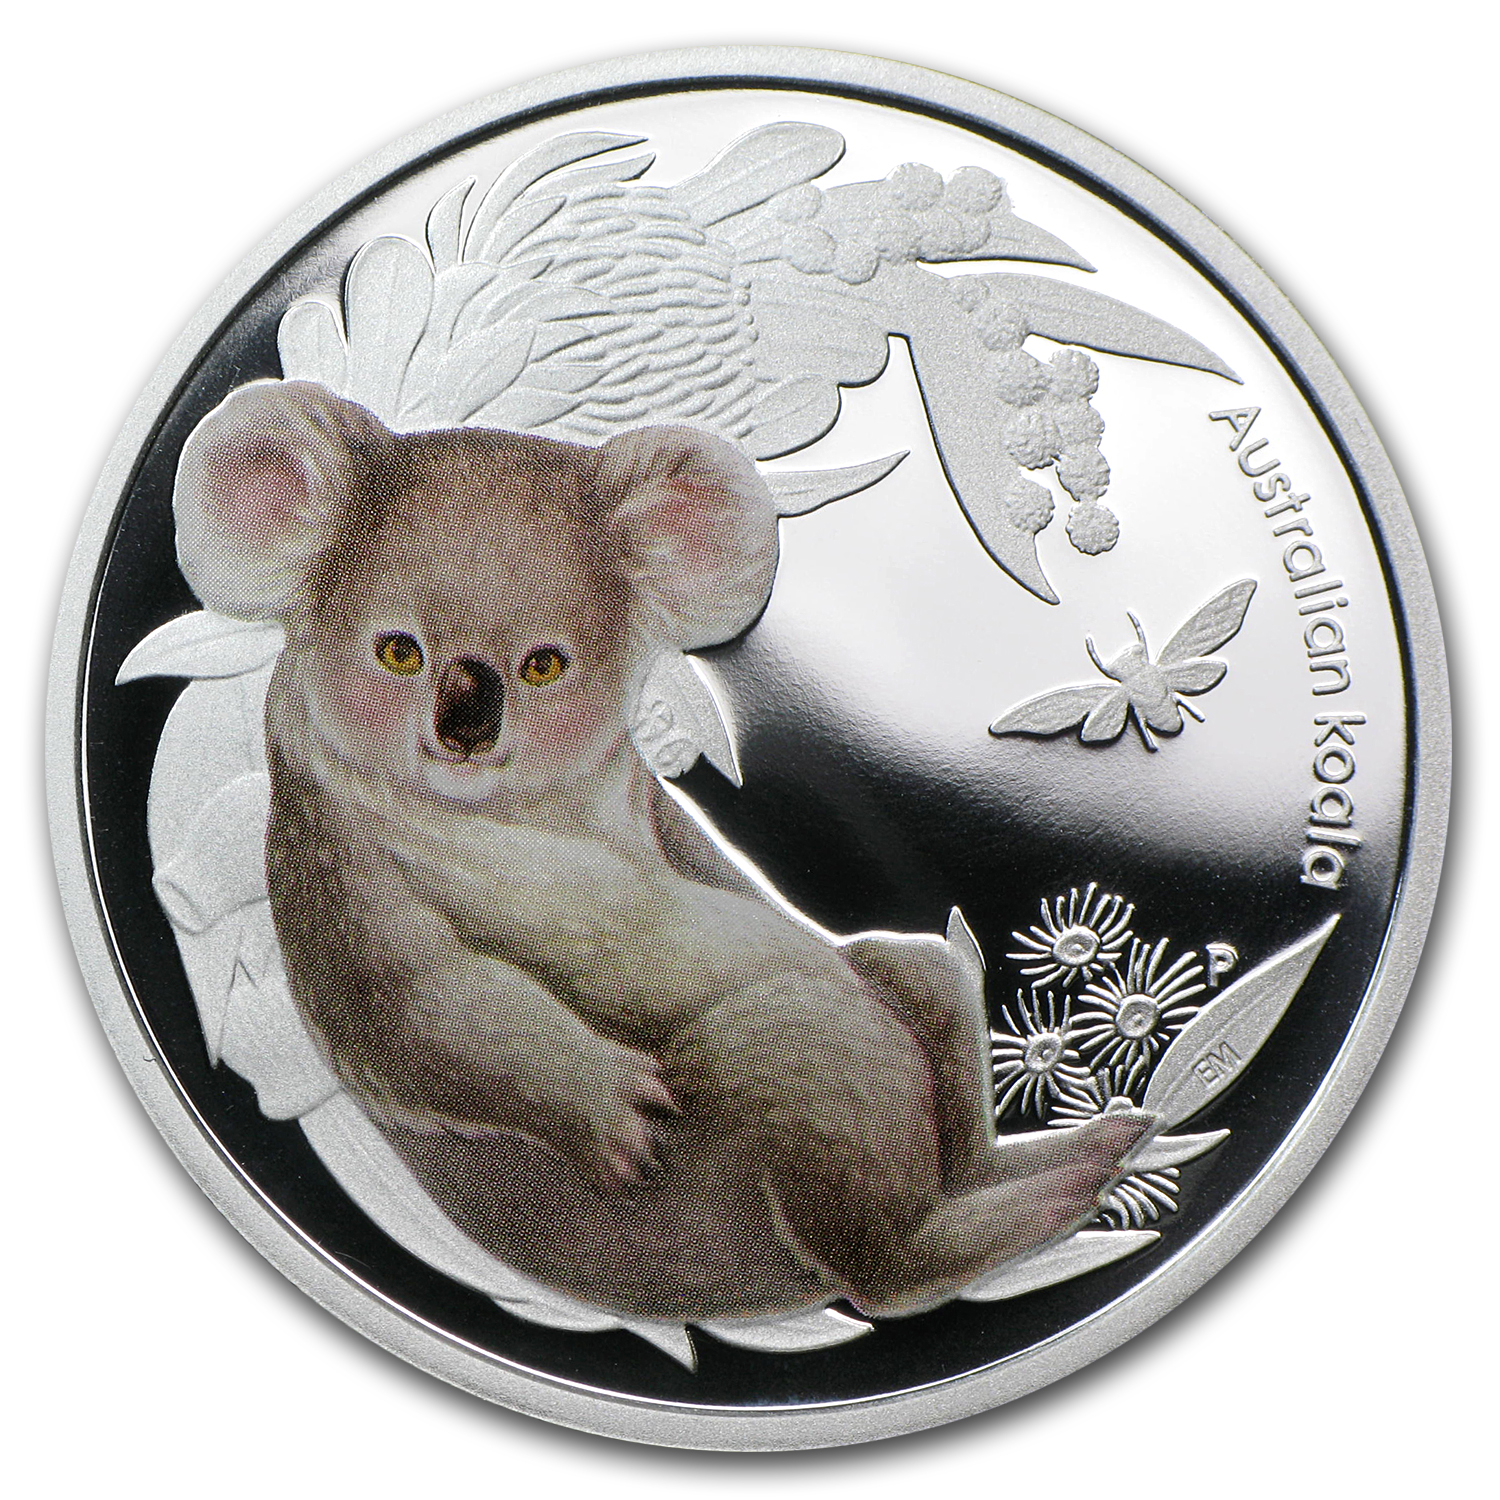 2011 Australia 1/2 oz Silver Bush Babies Koala Proof